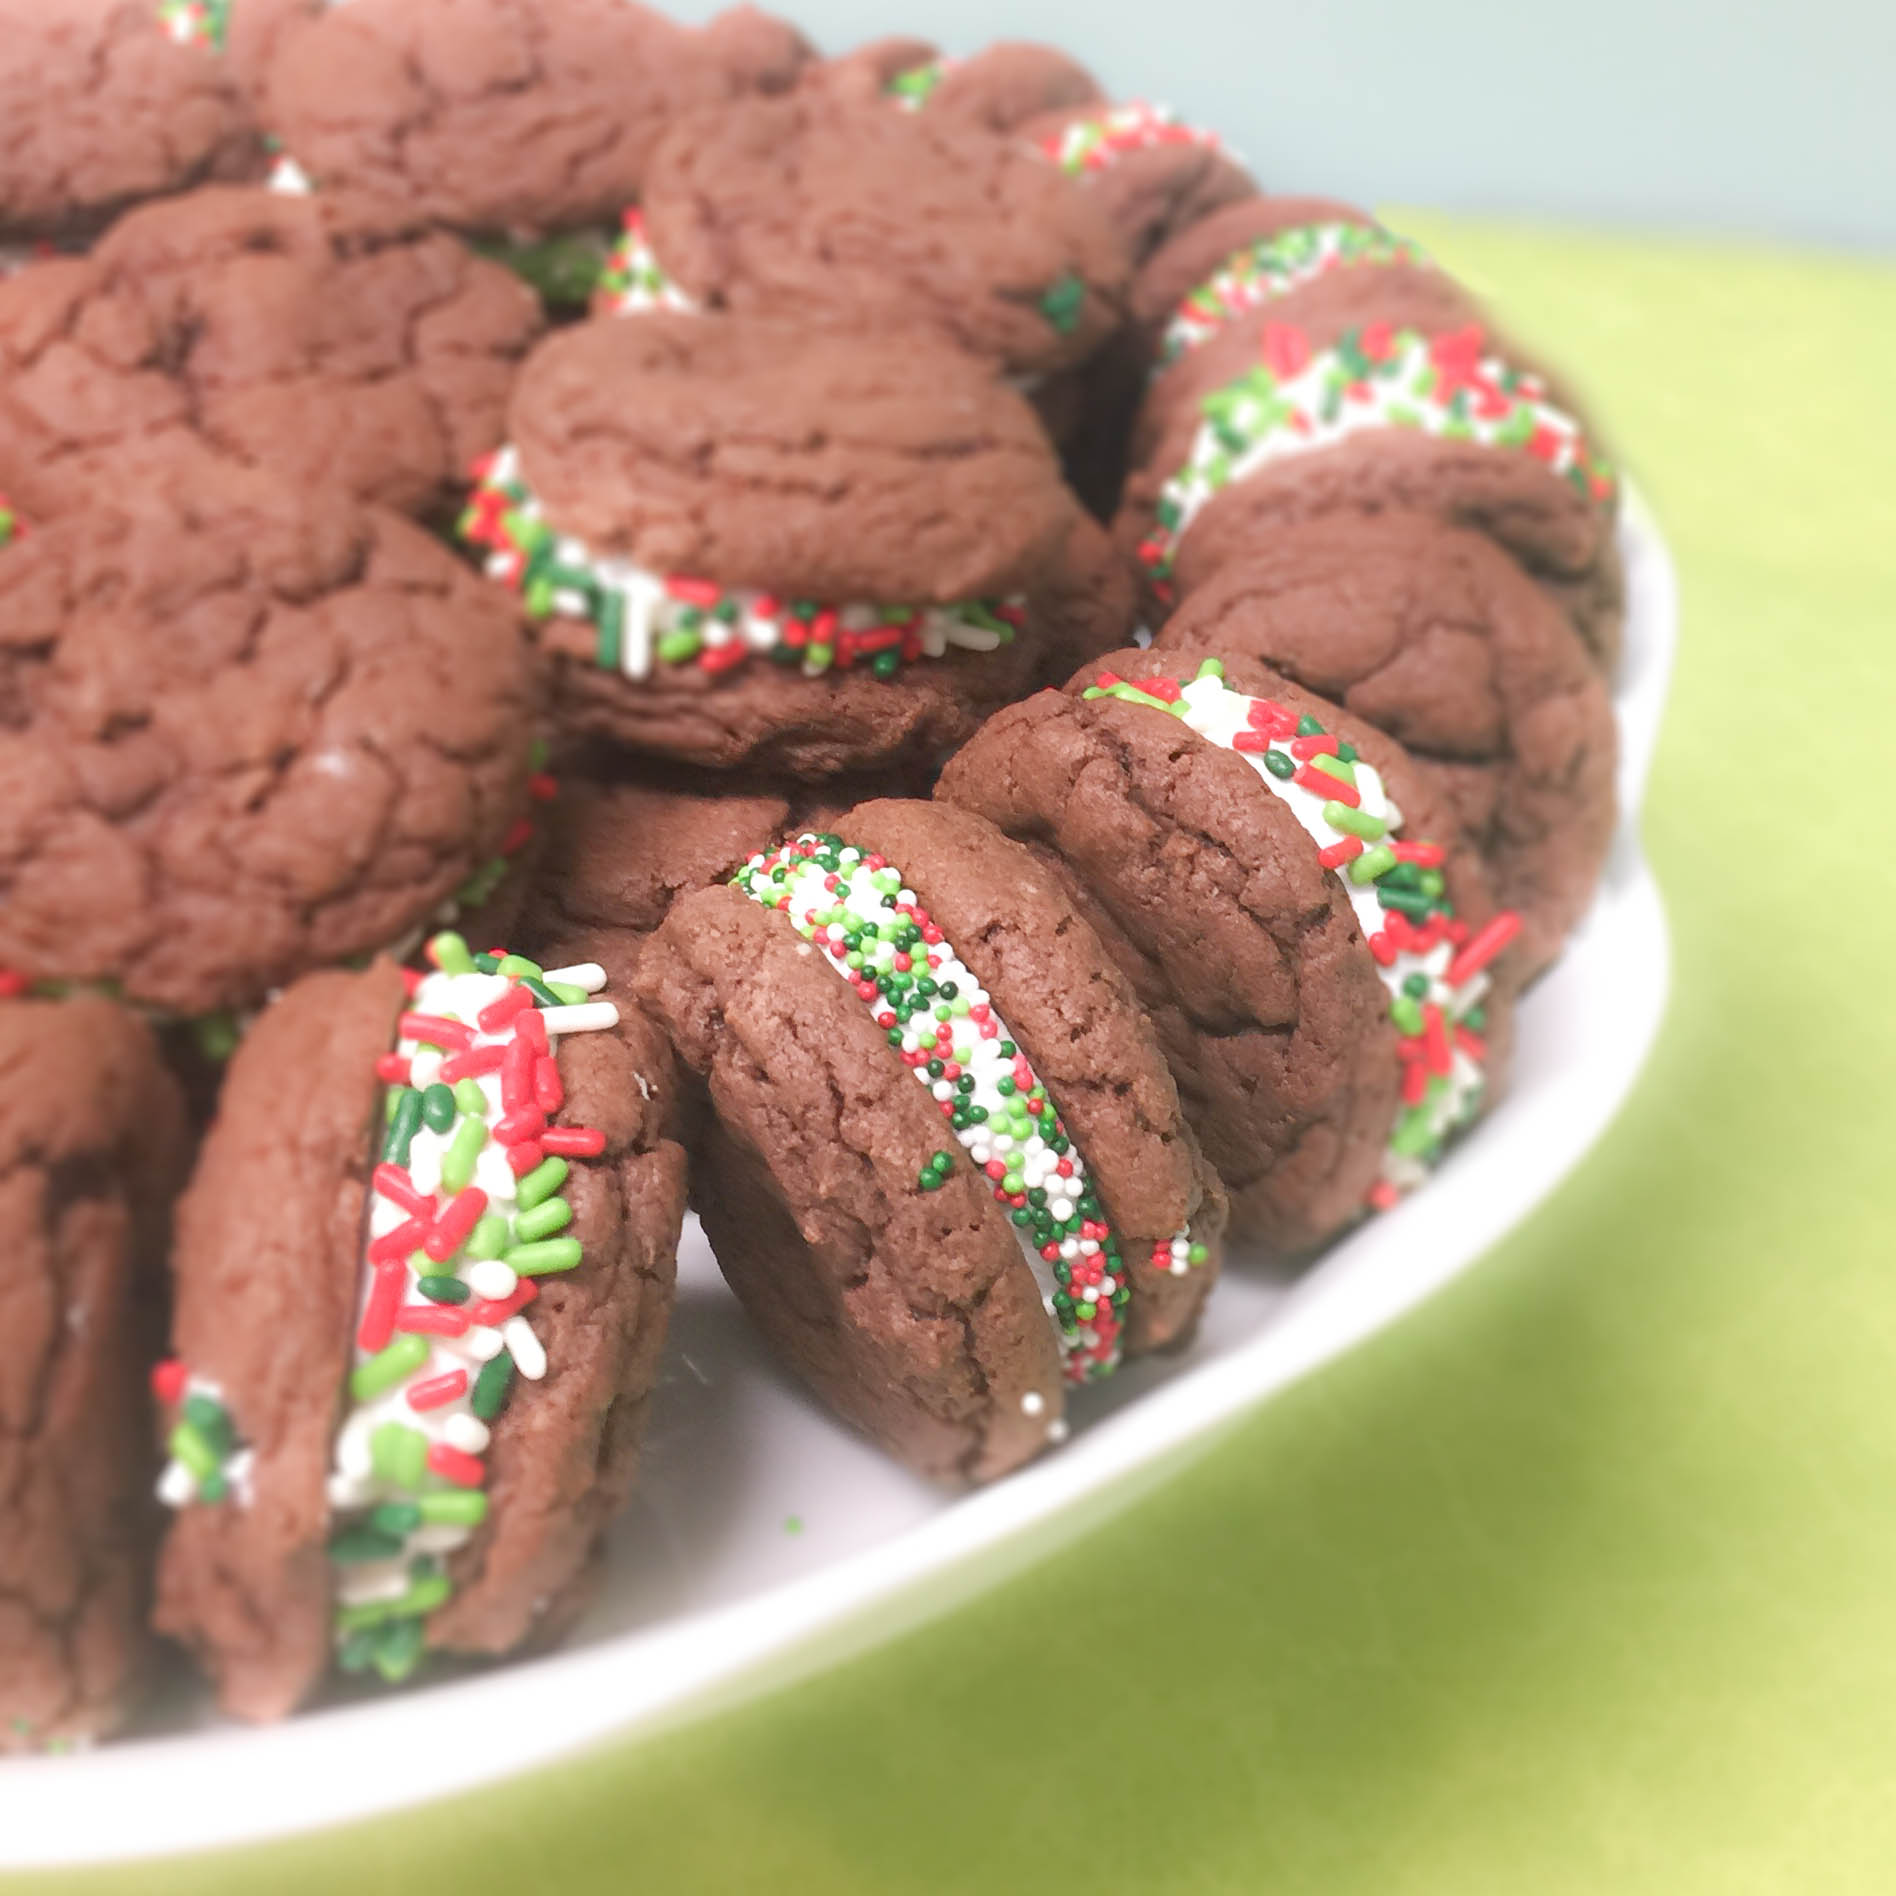 Chocolate Sandwich Cookies w/ Christmas Sprinkles